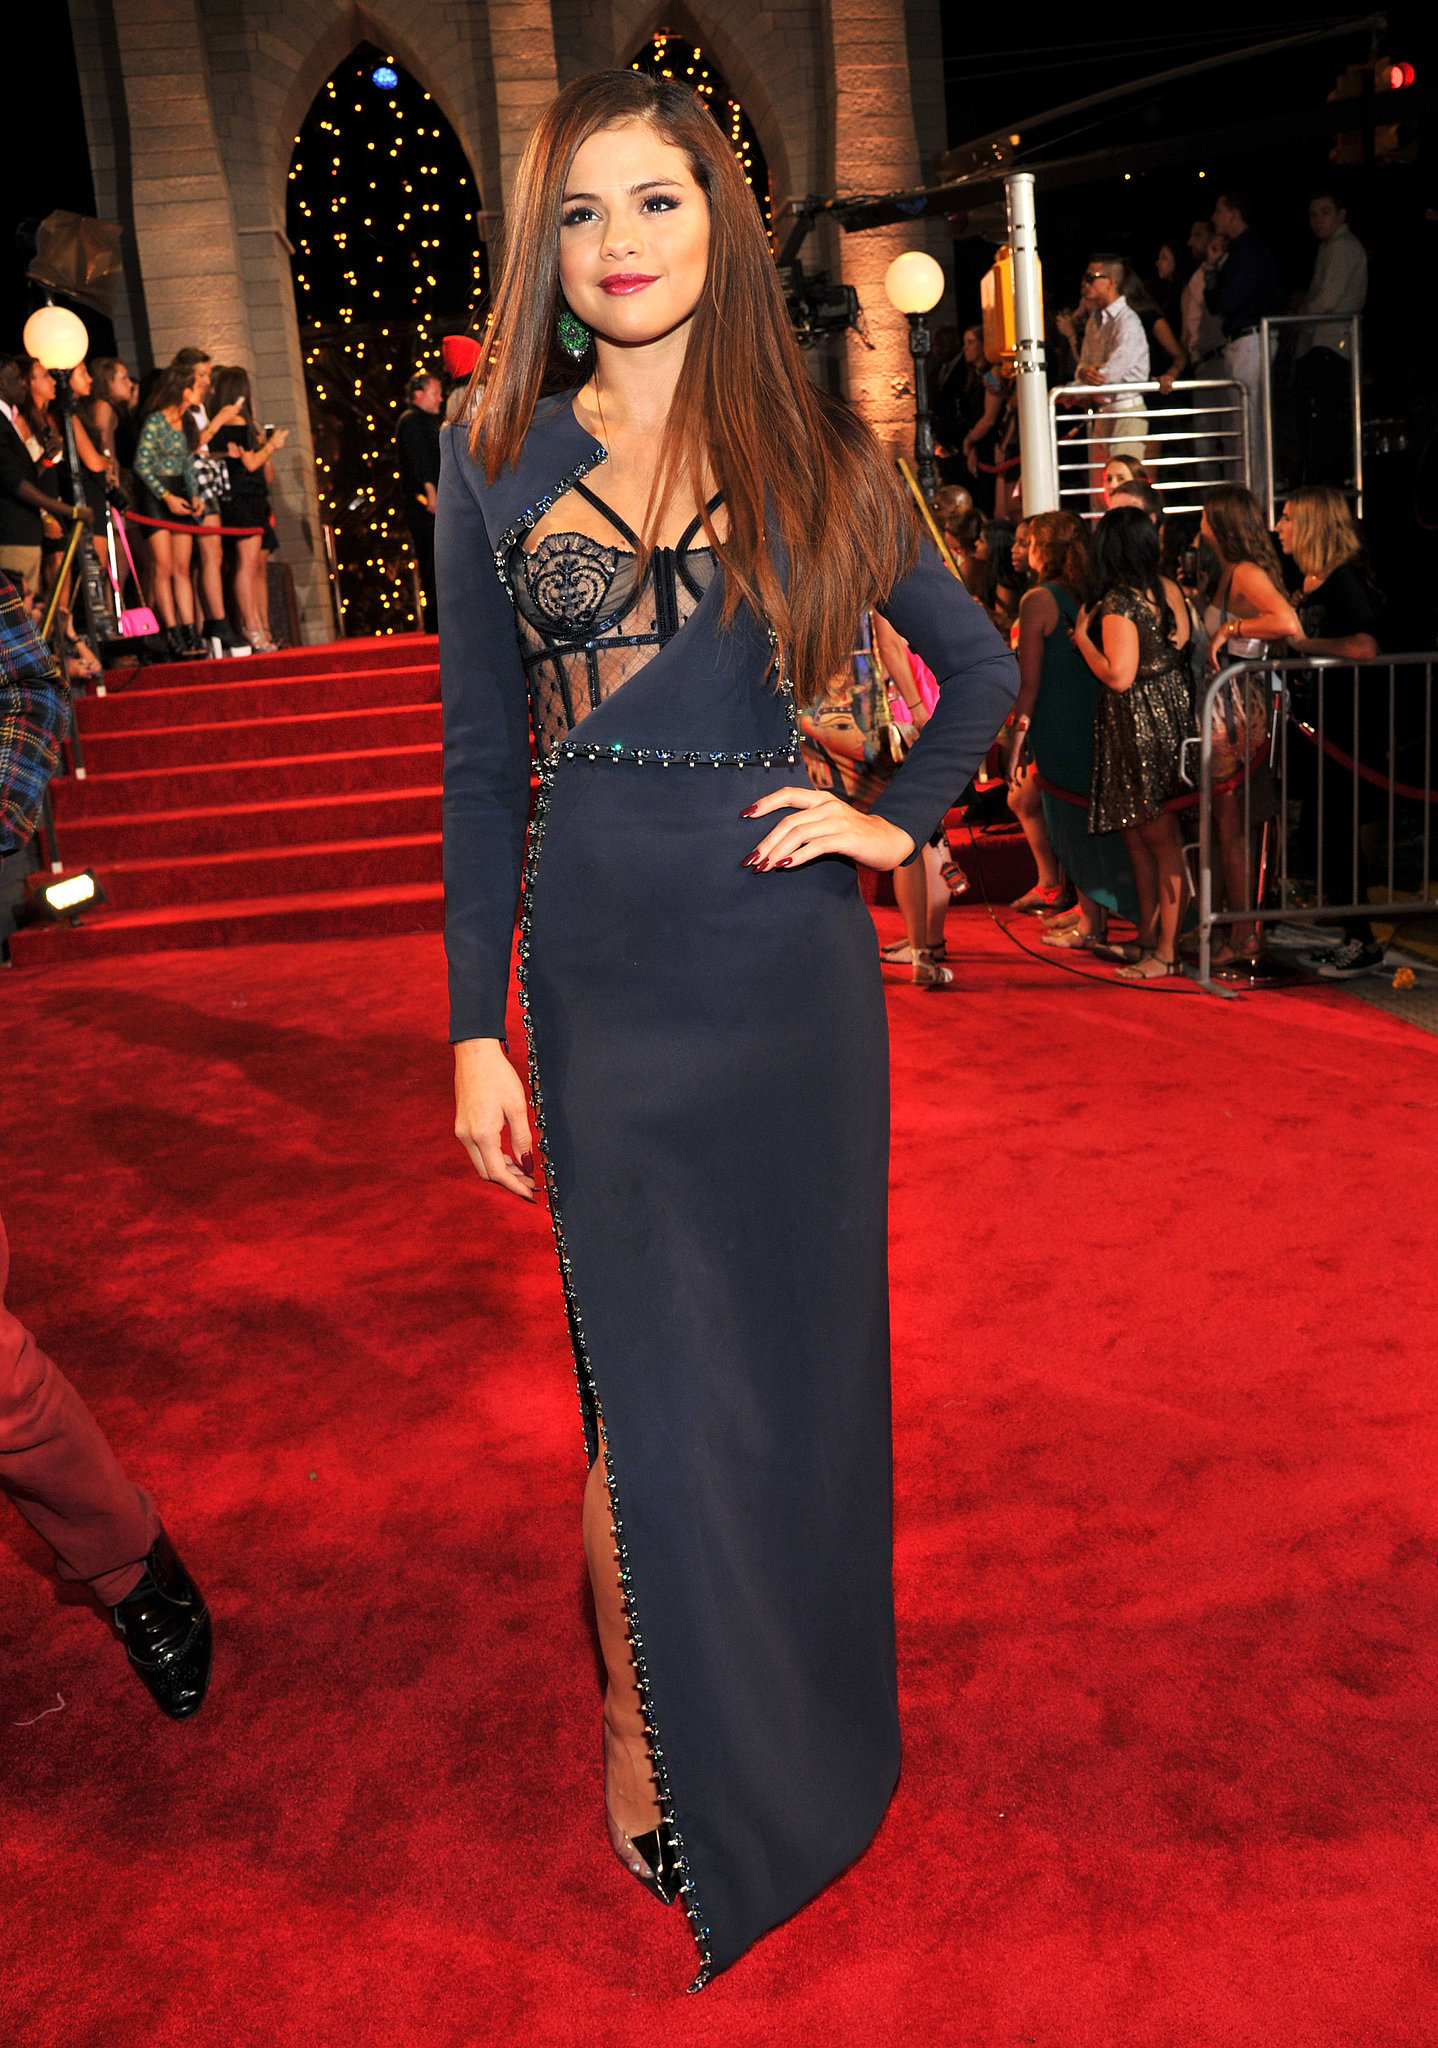 The latest in Selena Gomez's continuing love affair with Versace was the Atelier Versace gown — along with Lorraine Schwartz earrings — she chose for the 2013 MTV Video Music Awards.